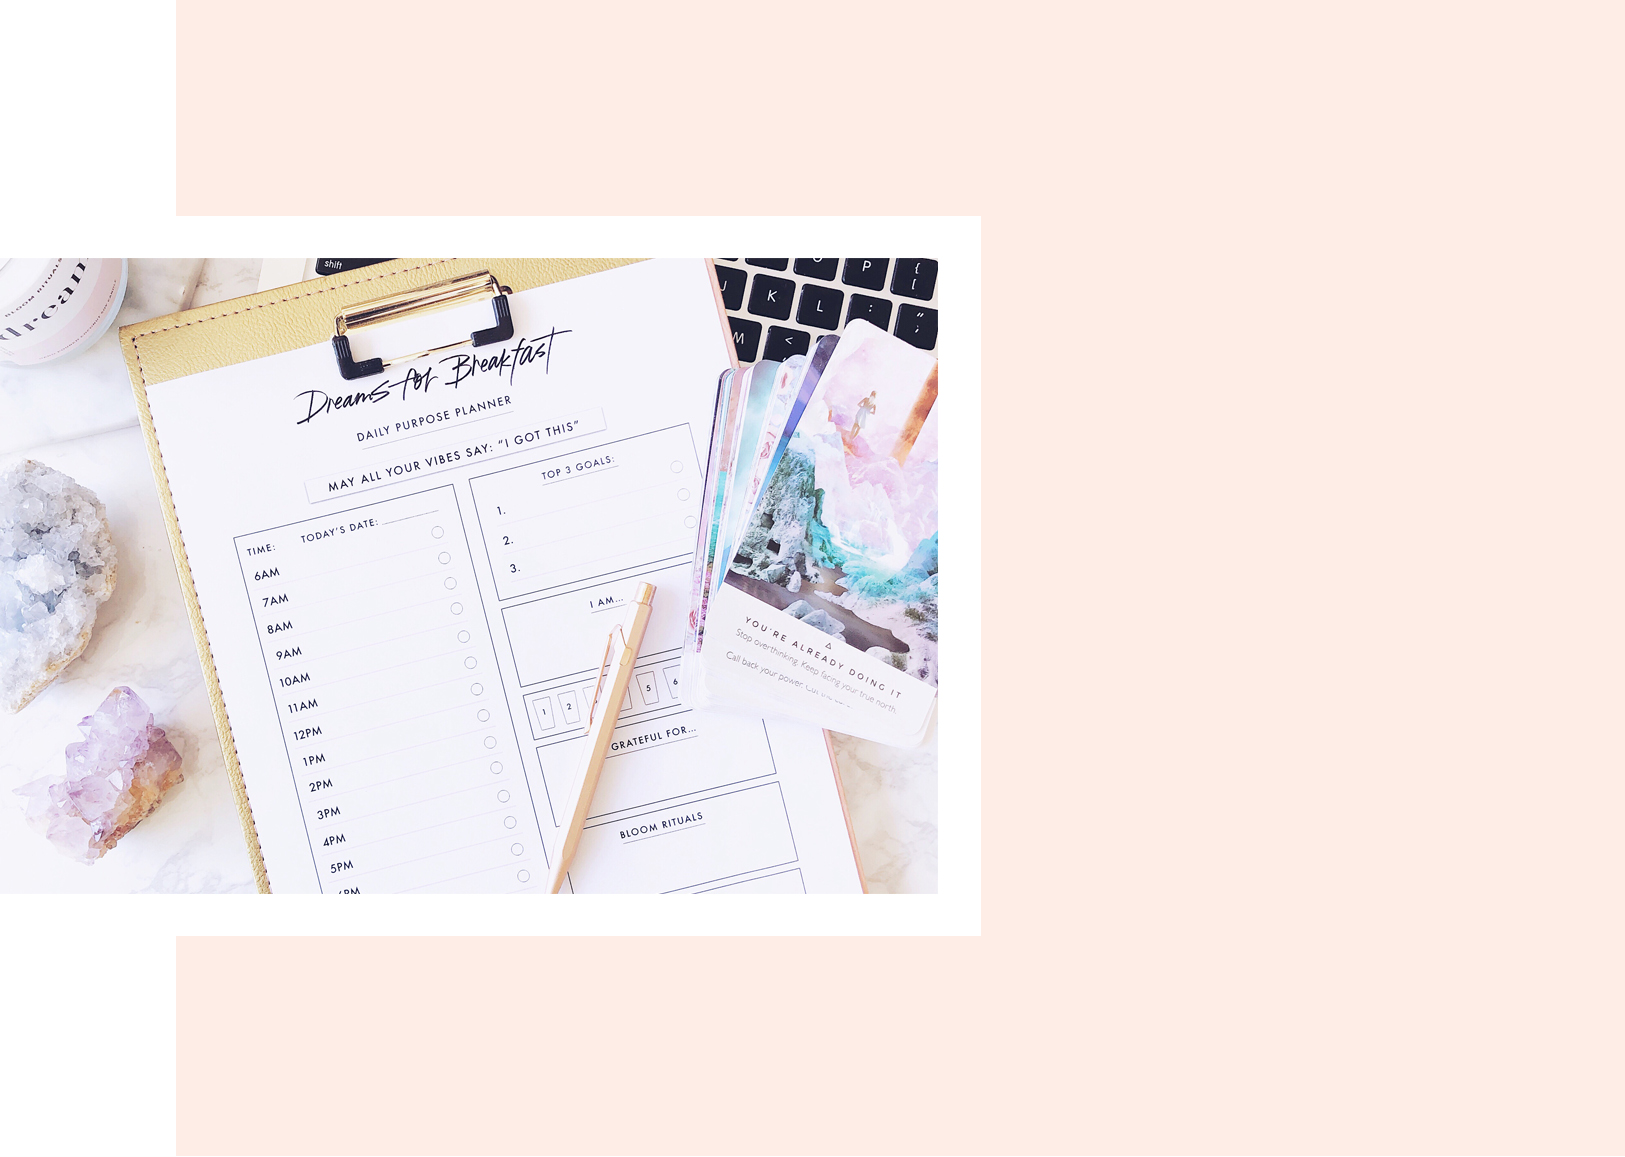 Ready to rock your biggest goals? - The Daily Purpose Planner has been designed so you can plan each day with intention; cultivate a success mindset and create the life of your dreams!